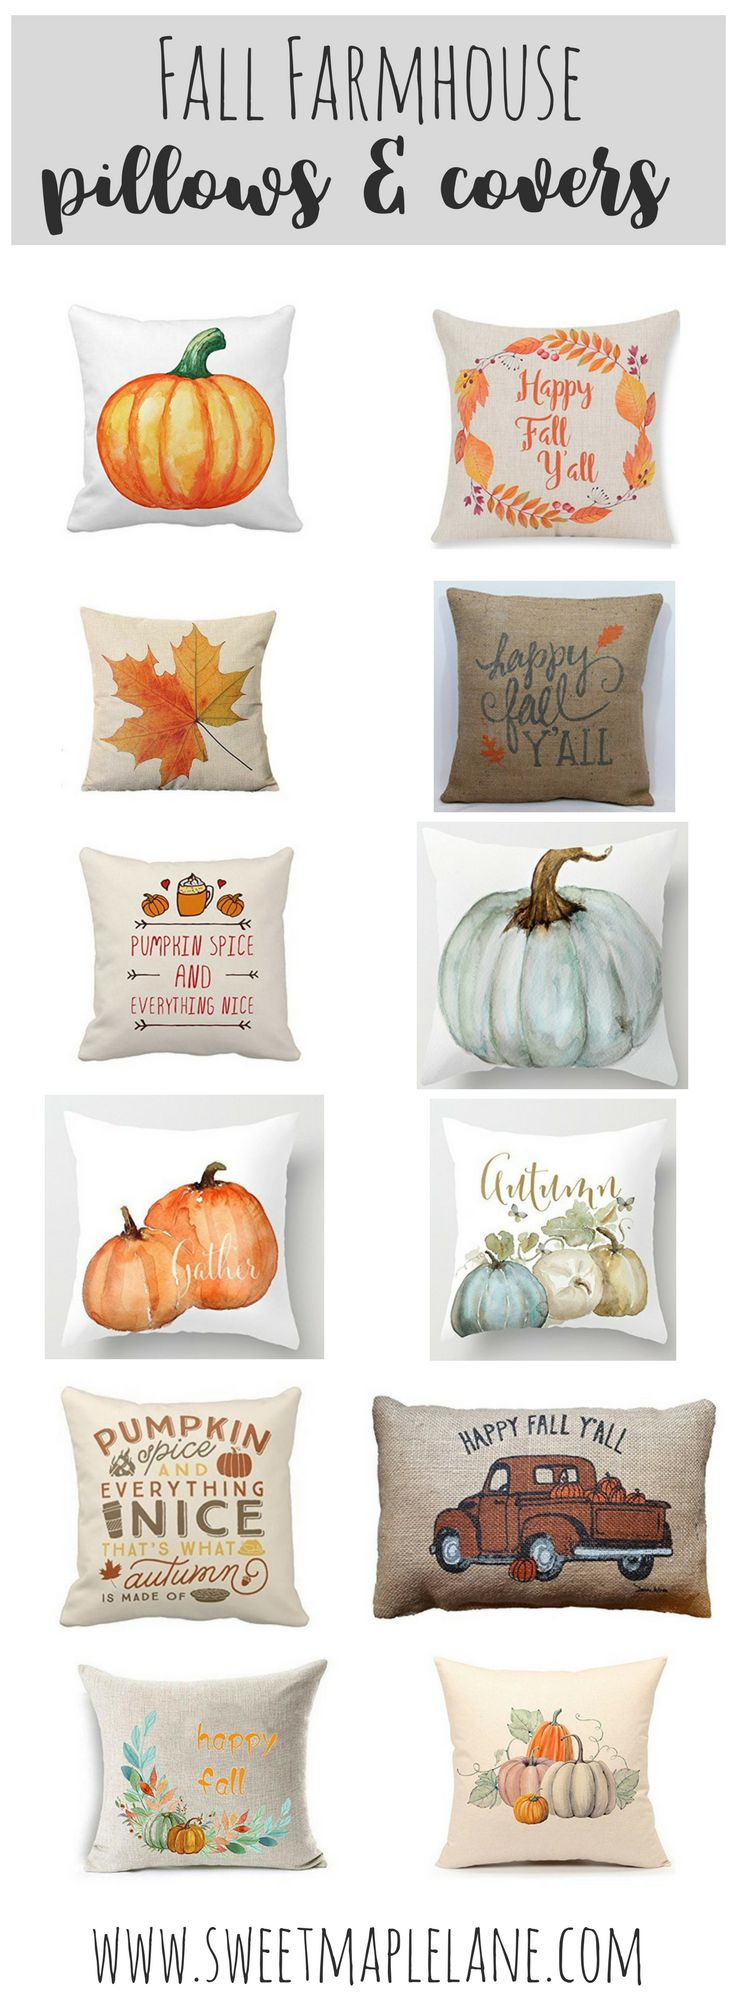 Check out these farmhouse fall pillows and pillow covers!